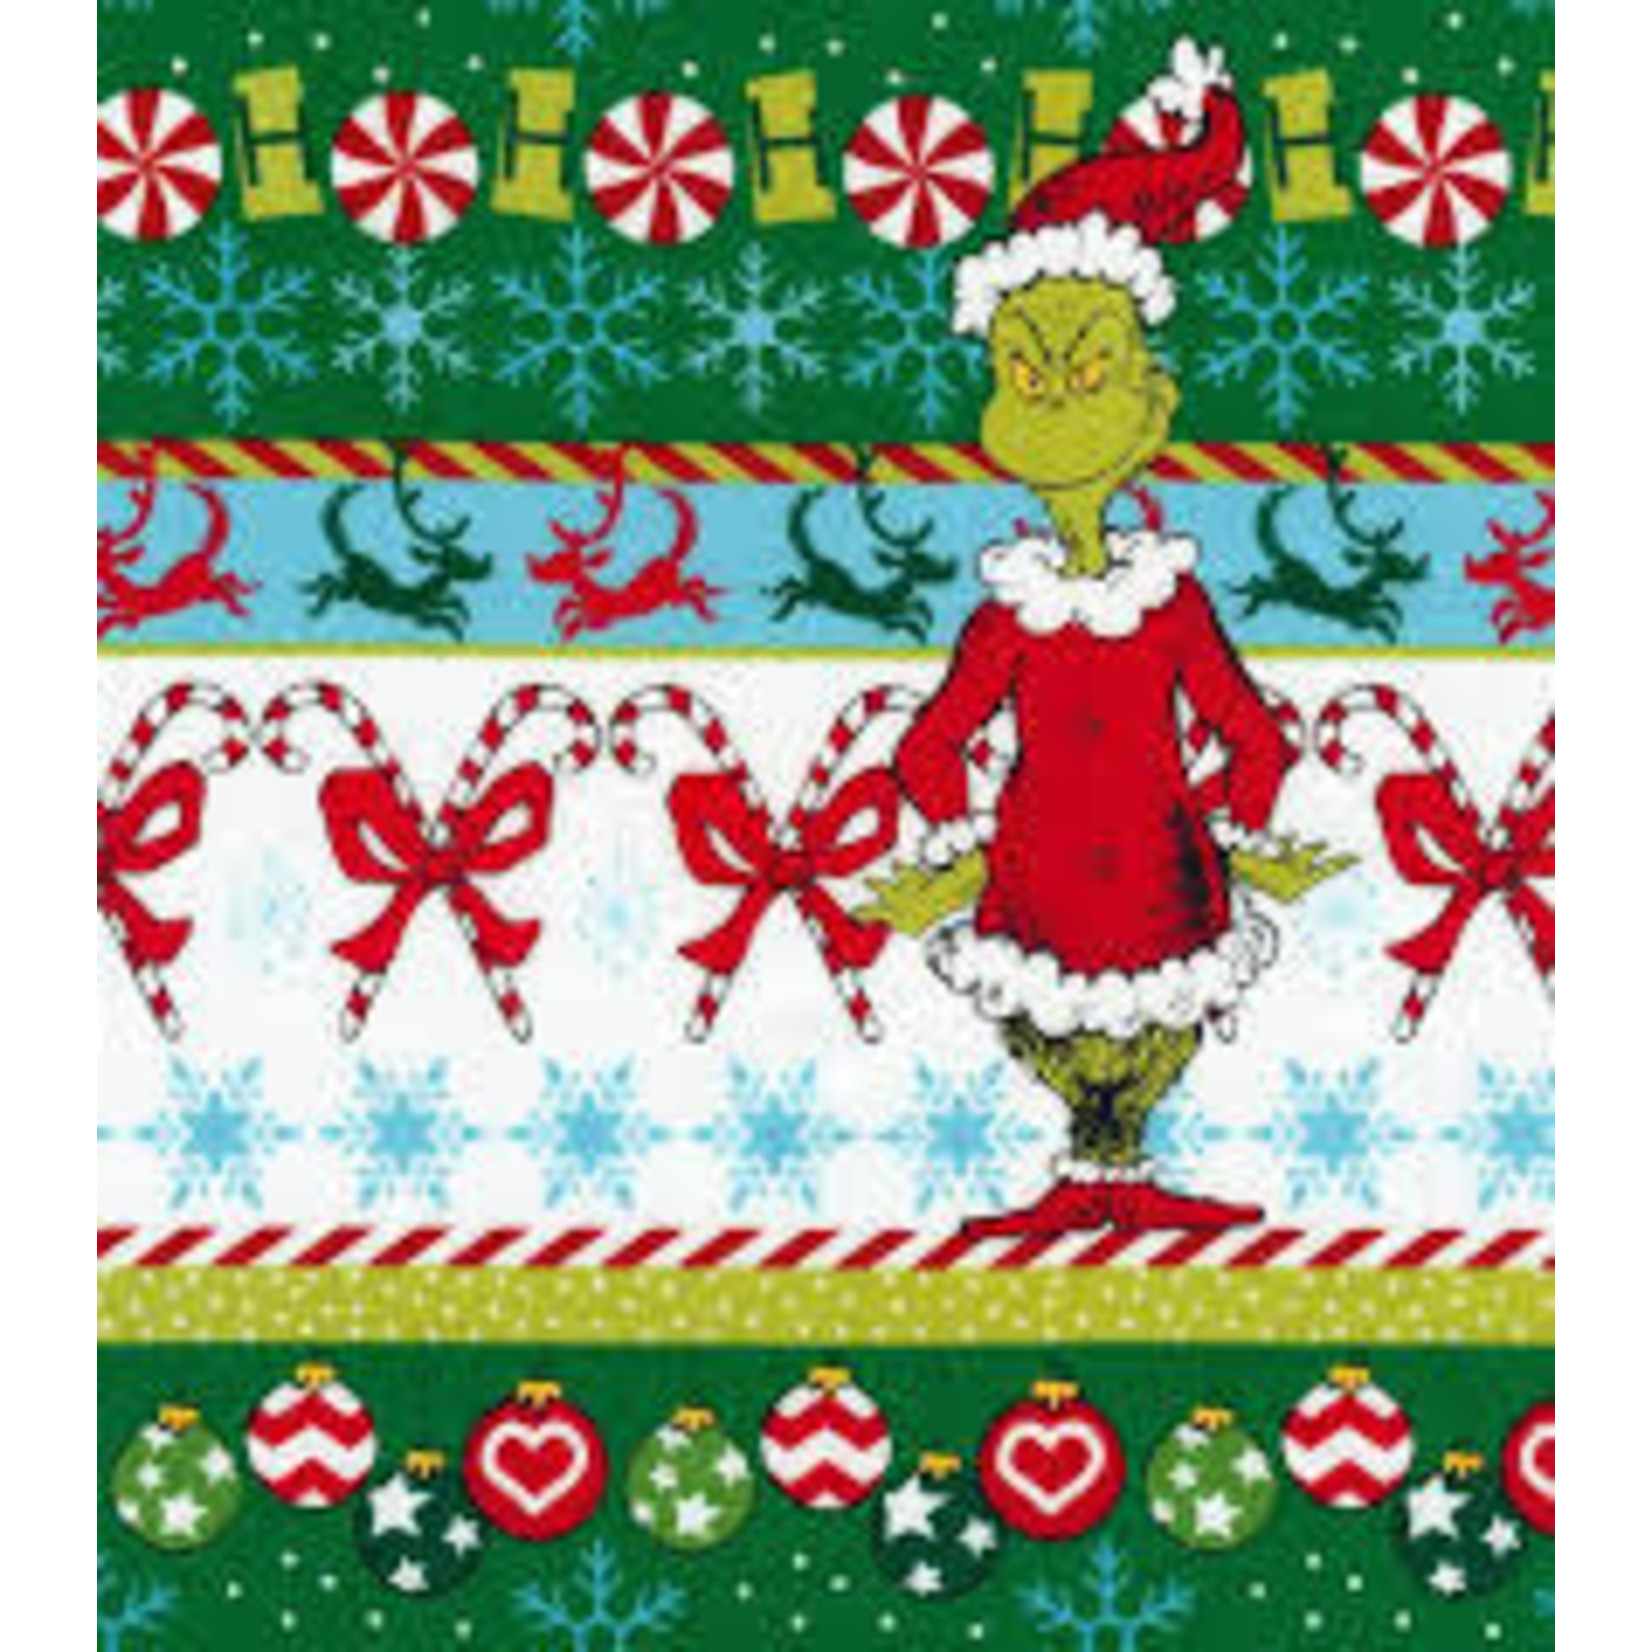 ROBERT KAUFMAN HOW THE GRINCH STOLE X-MAS, BORDER PER CM OR $19/M